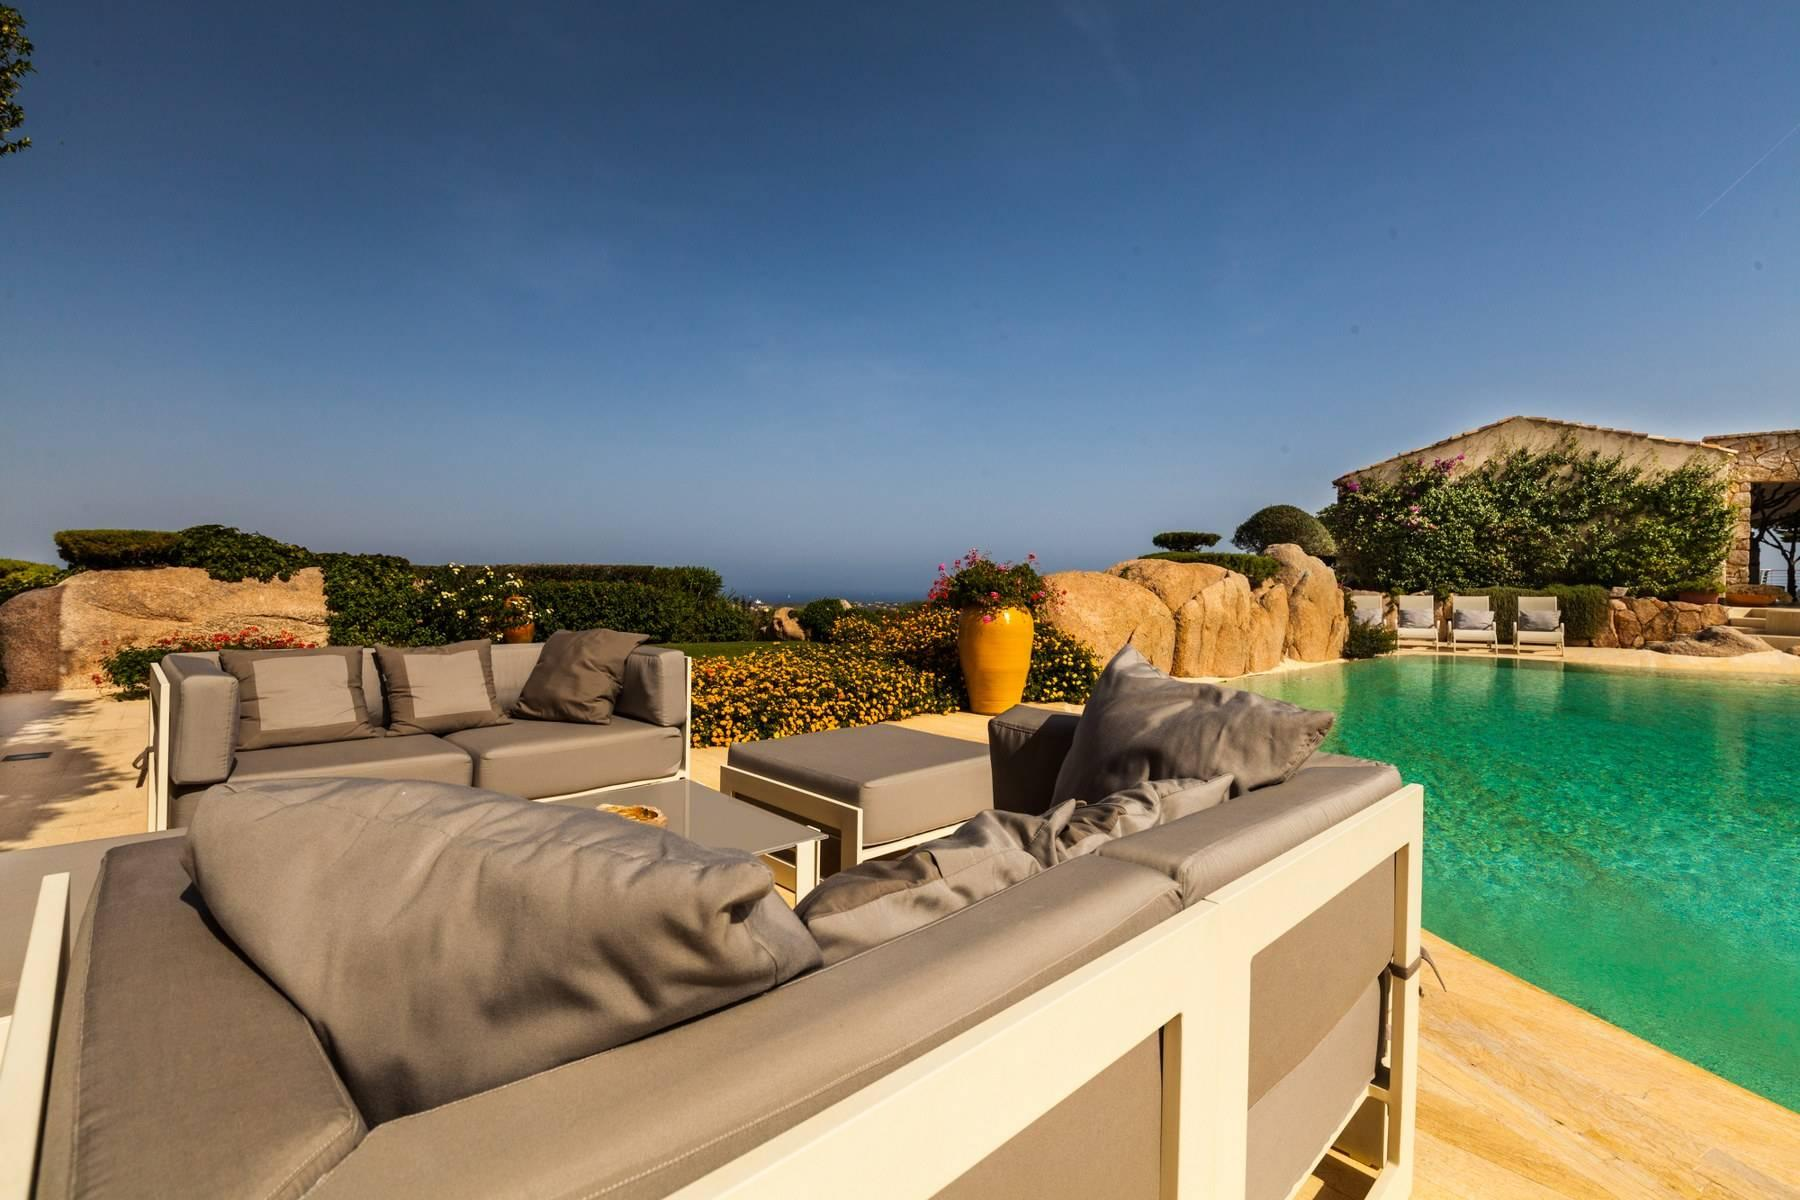 Exclusive property with stunning sea views overlooking the Costa Smeralda - 3